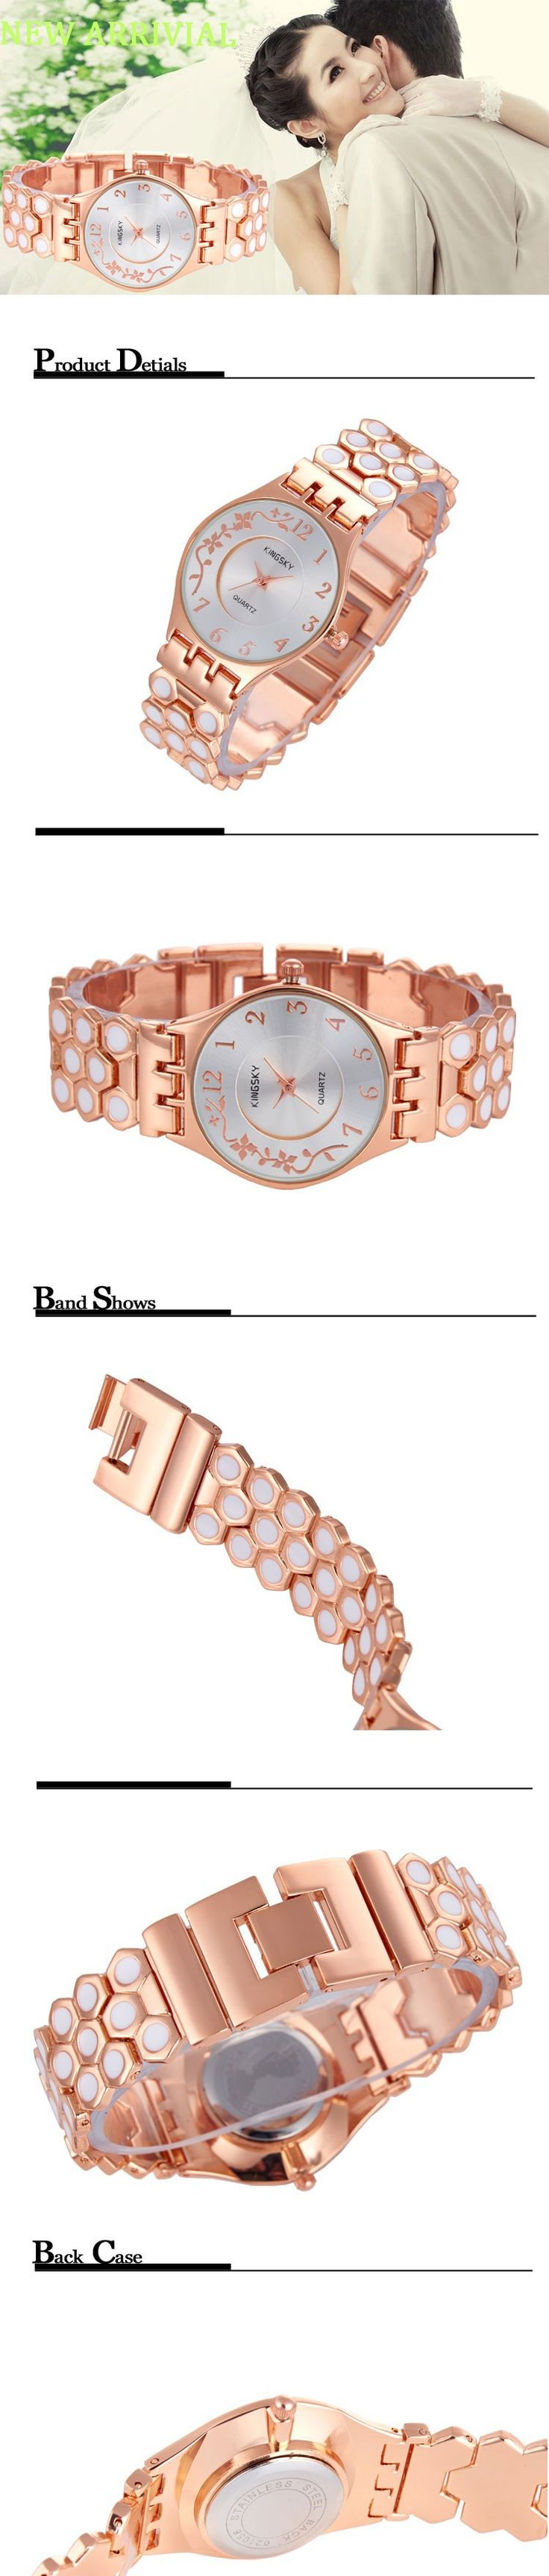 watches wrist june romex offers brands elegant in original studded prayer page best pricing